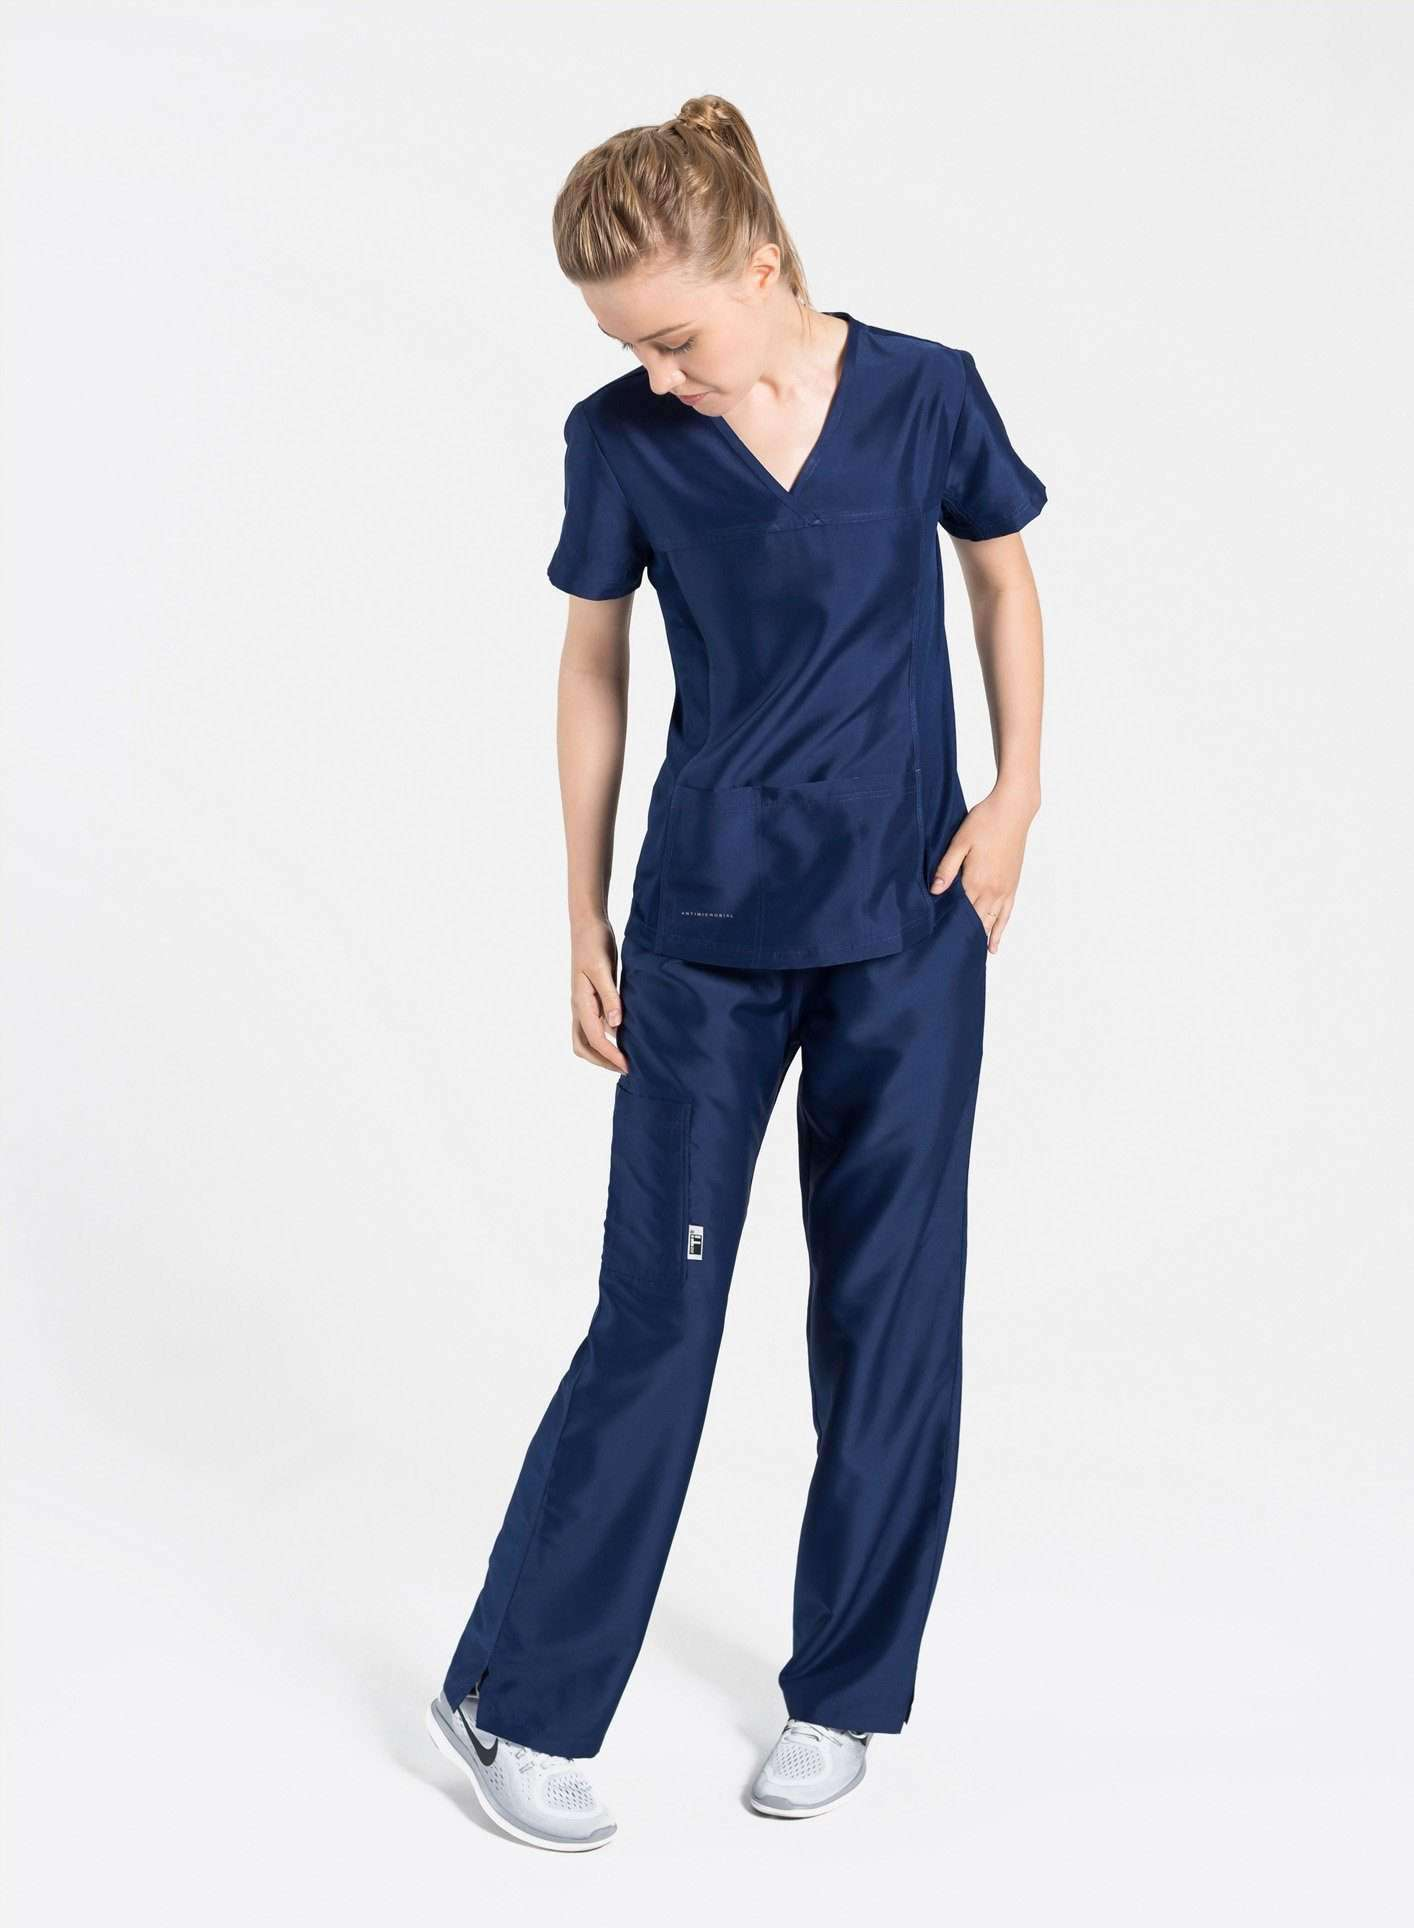 womens Elements short sleeve three pocket scrub top navy blue